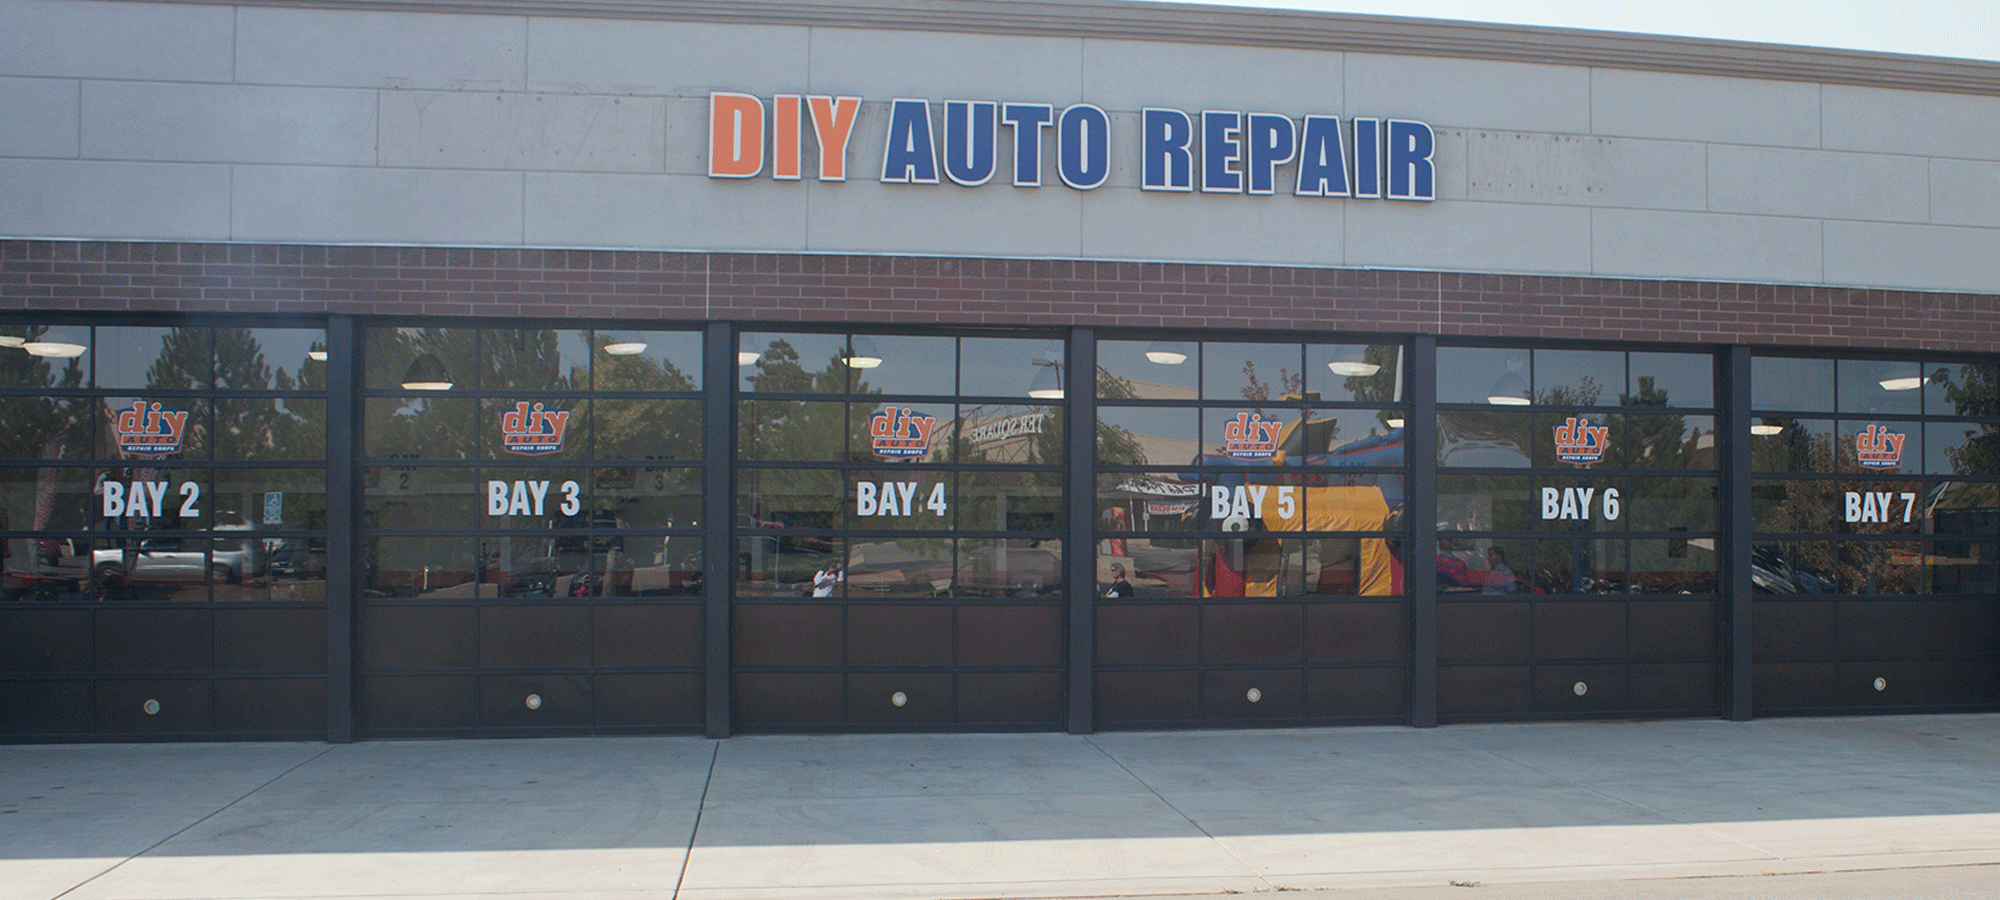 Diy auto repair shops equipped self service garage bays diy auto repair bays for rent solutioingenieria